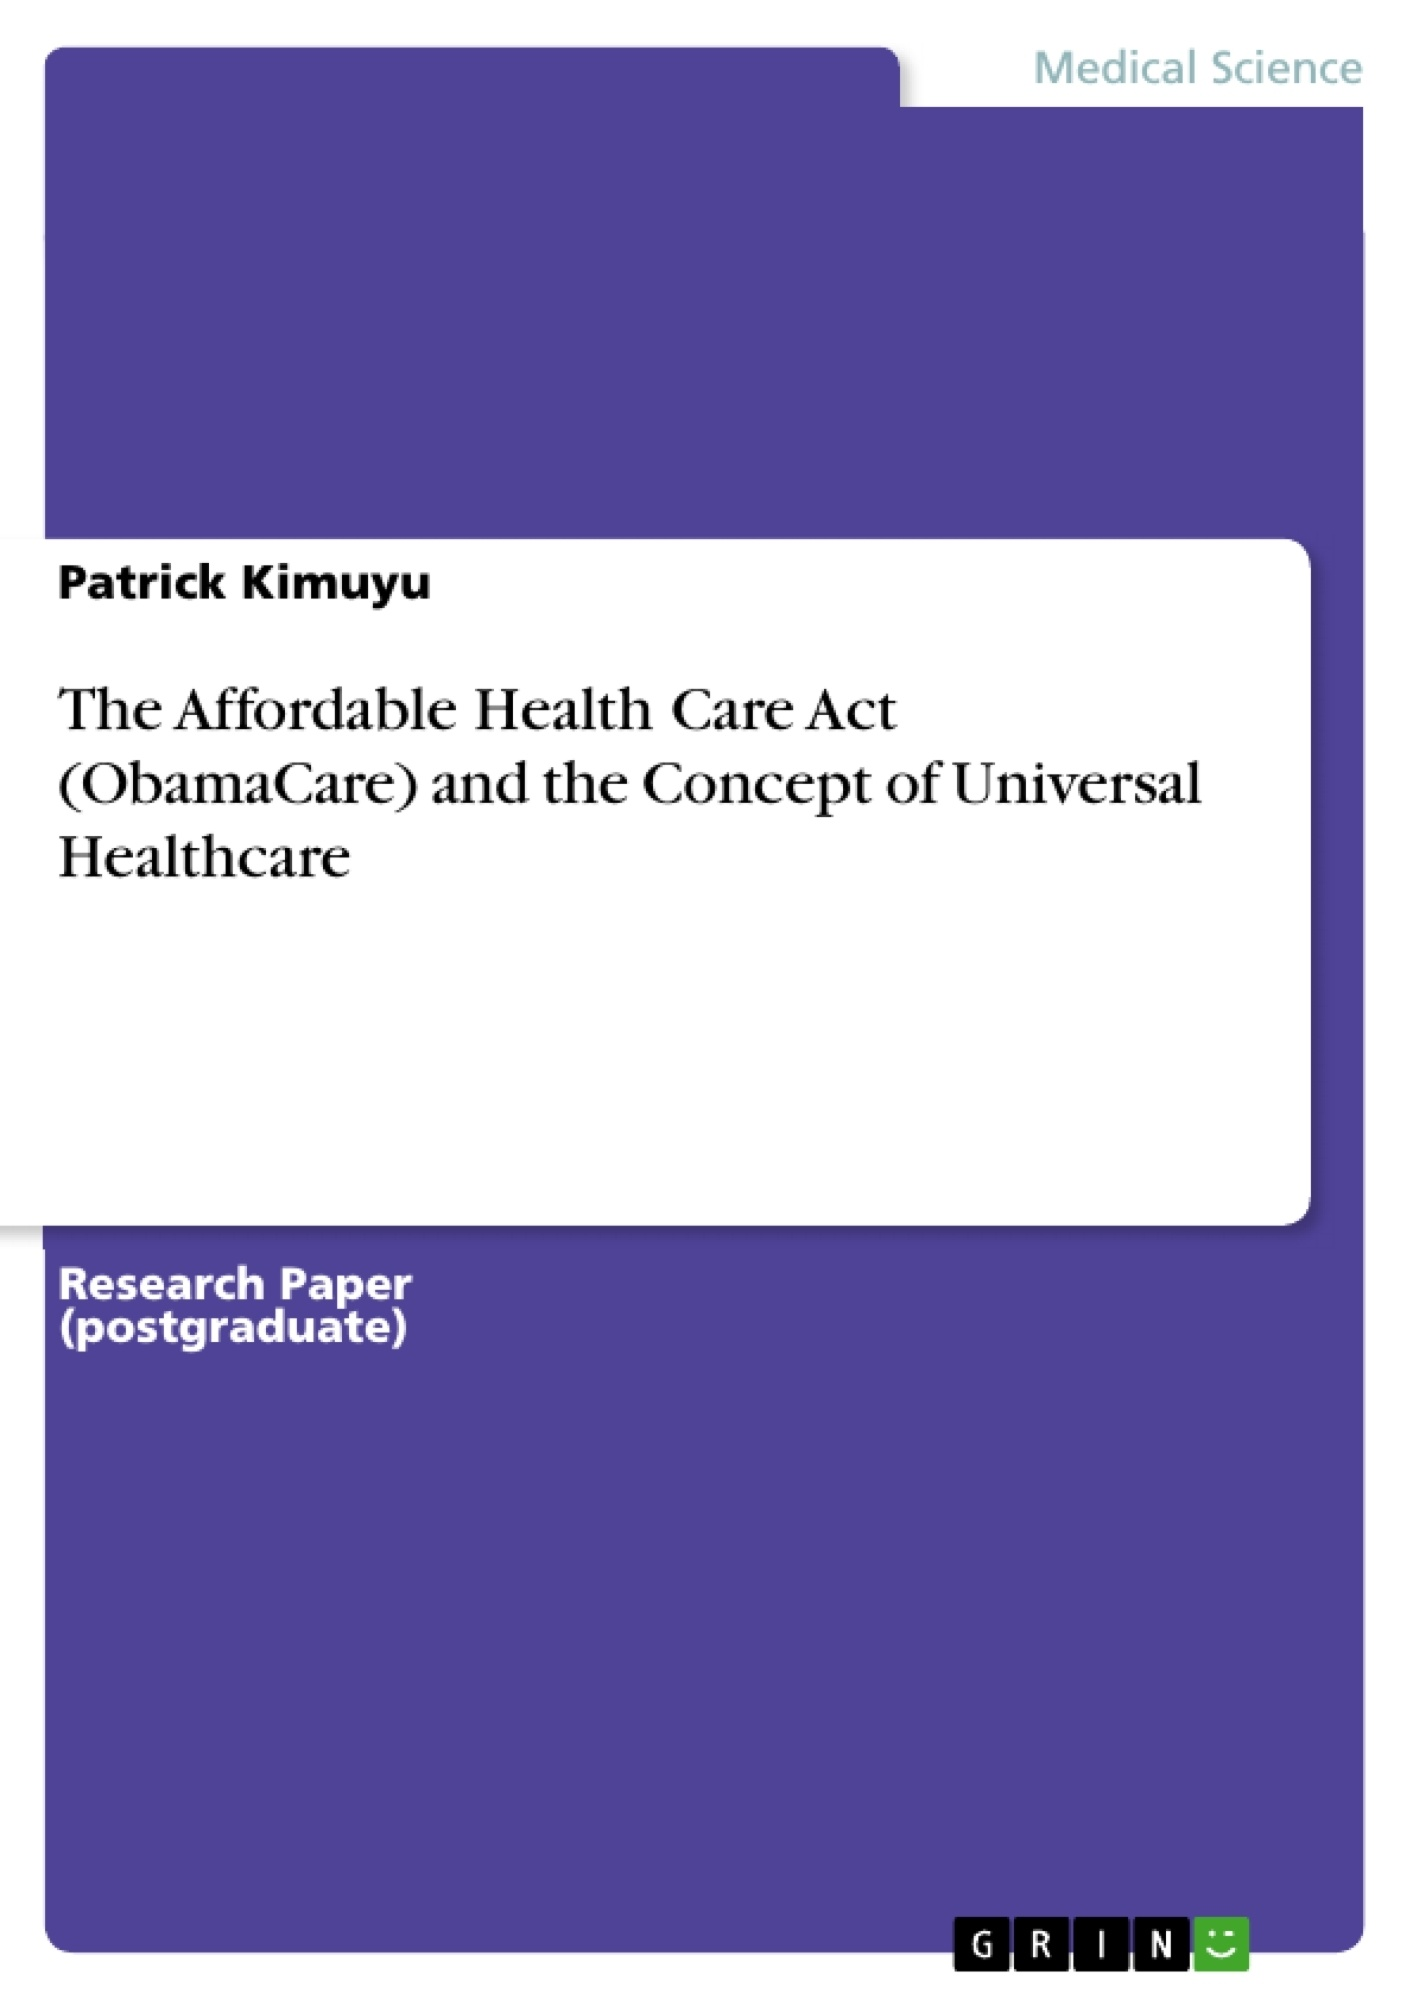 Title: The Affordable Health Care Act (ObamaCare) and the Concept of Universal Healthcare